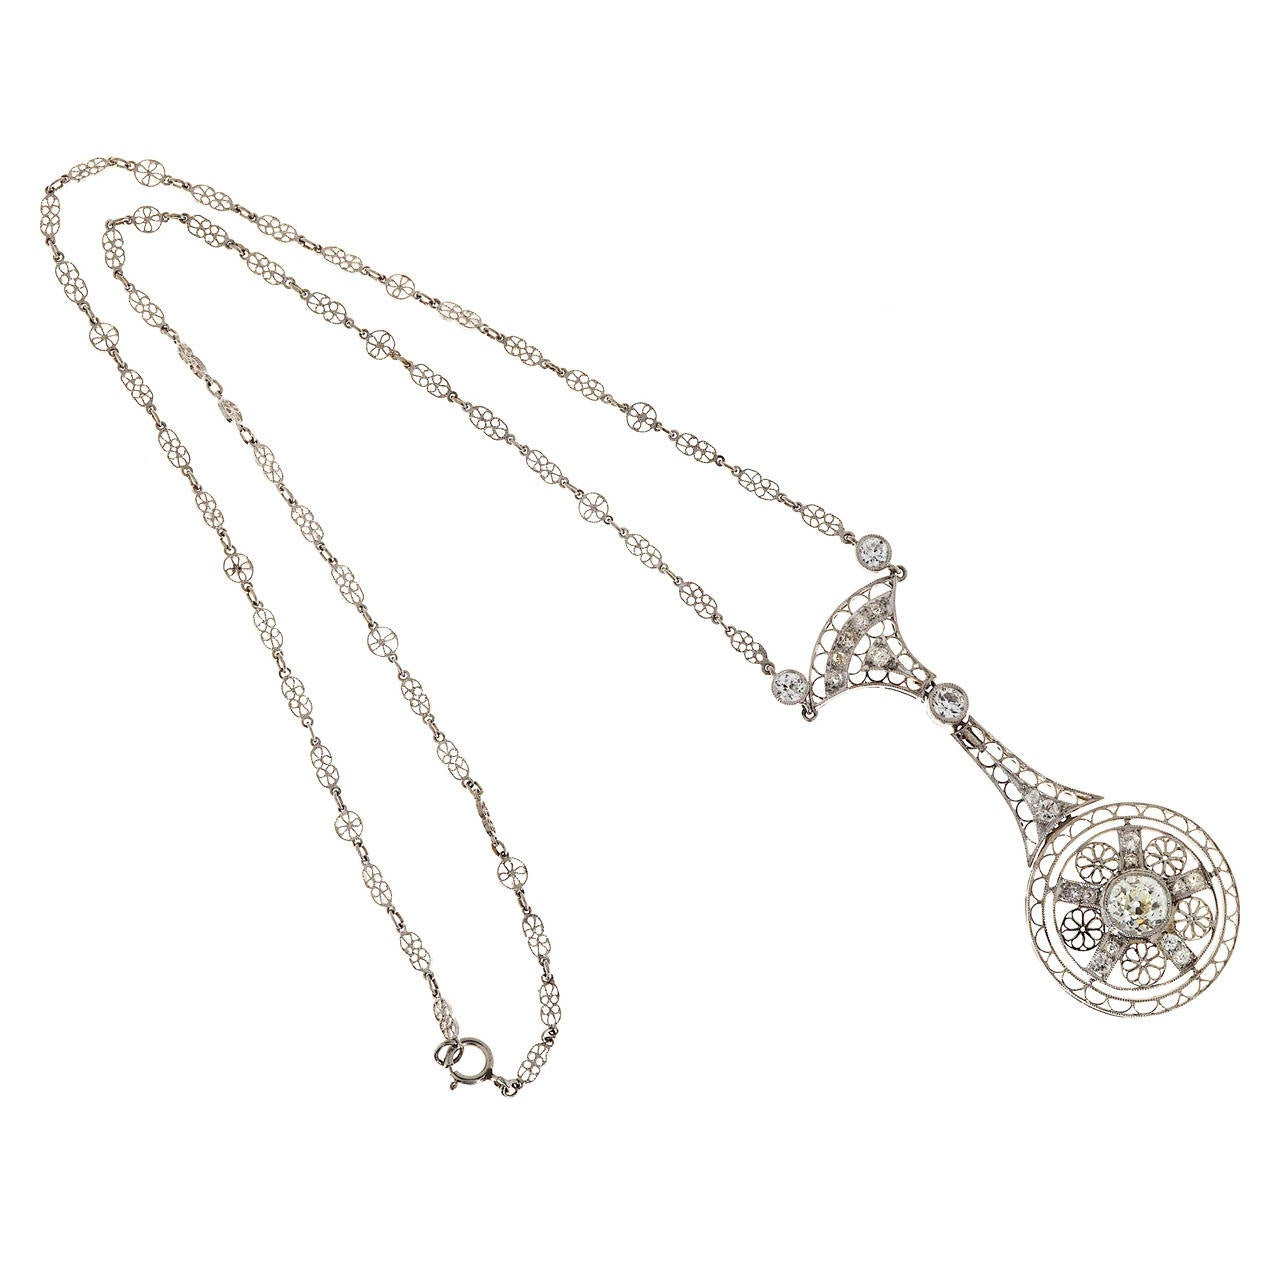 Id J 113957 likewise How To Sell My Jewelry For Cash also Id J 416262 as well Id V 99515 besides Id J 93512. on oscar heyman jewelry heart pendant